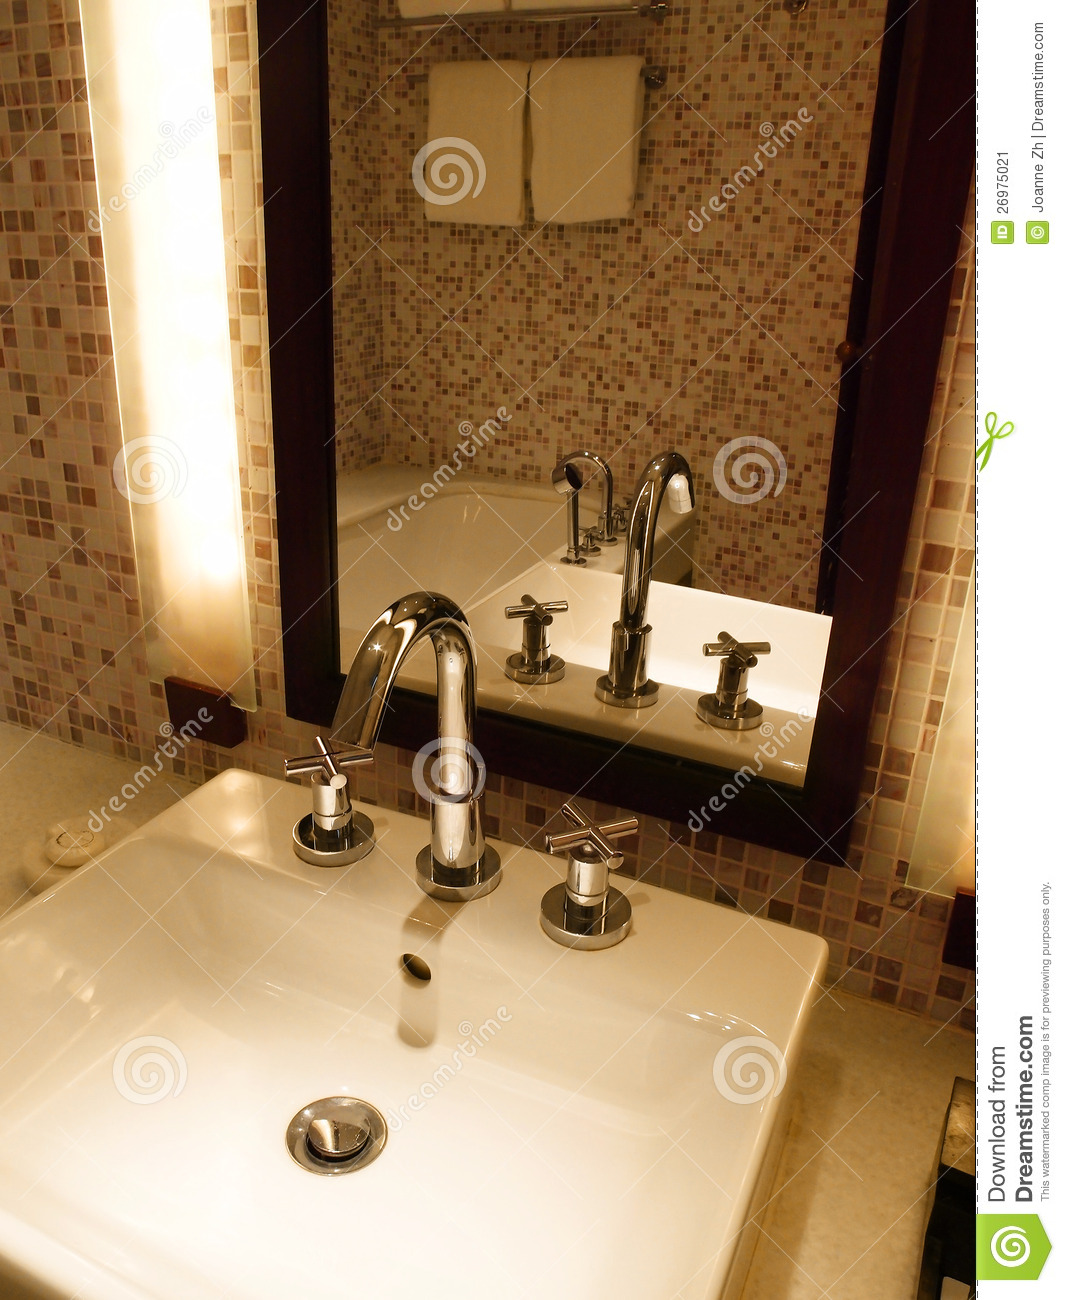 Luxury Bathroom Sink And Tap Stock Image Image 26975021